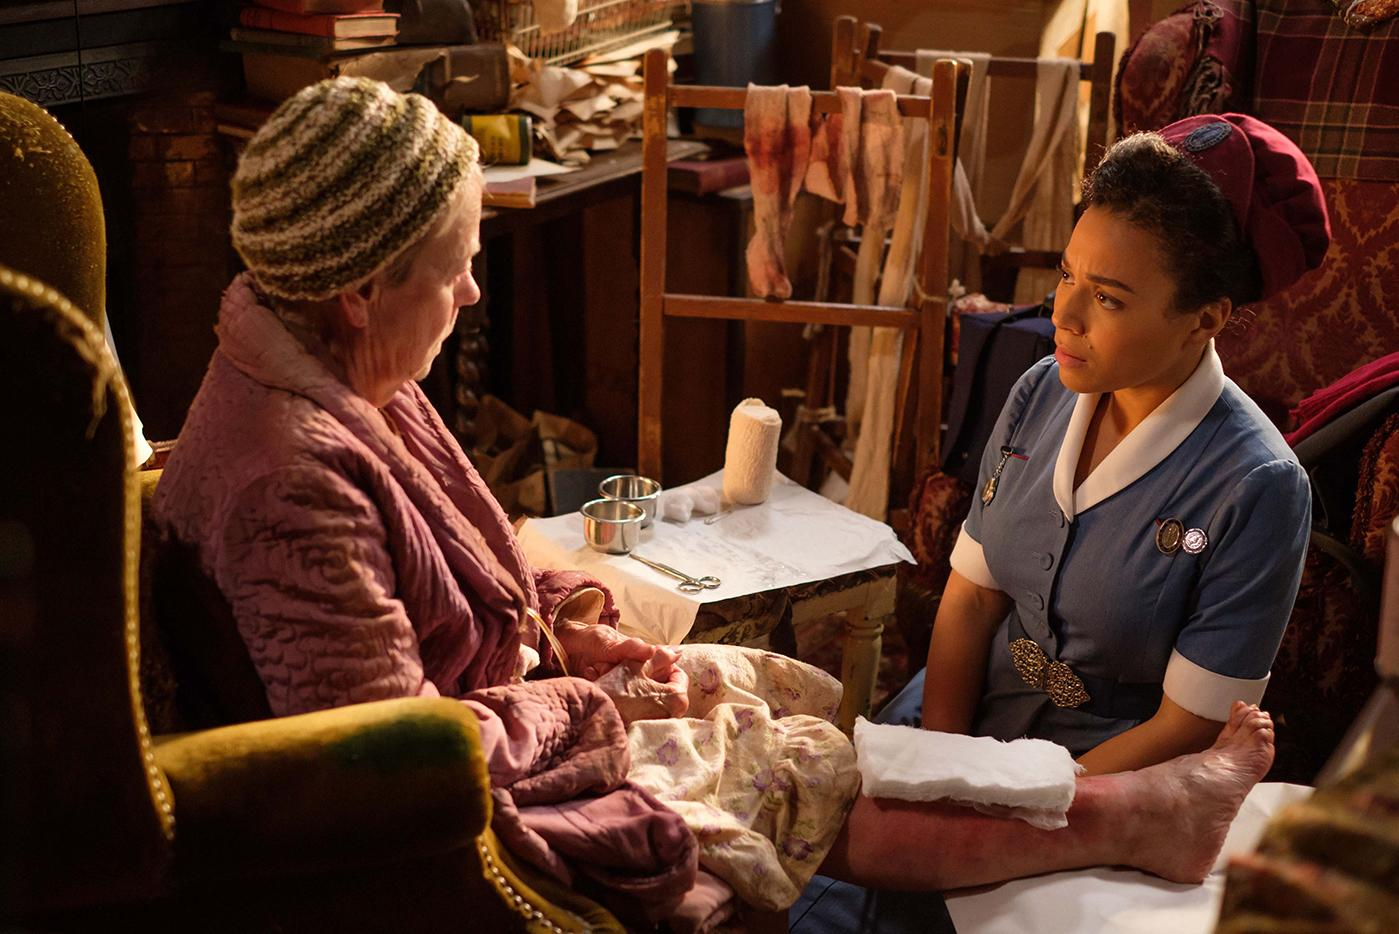 Lucille with Ms. Millgrove in Call the Midwife. Photo: BBC/Neal Street Productions